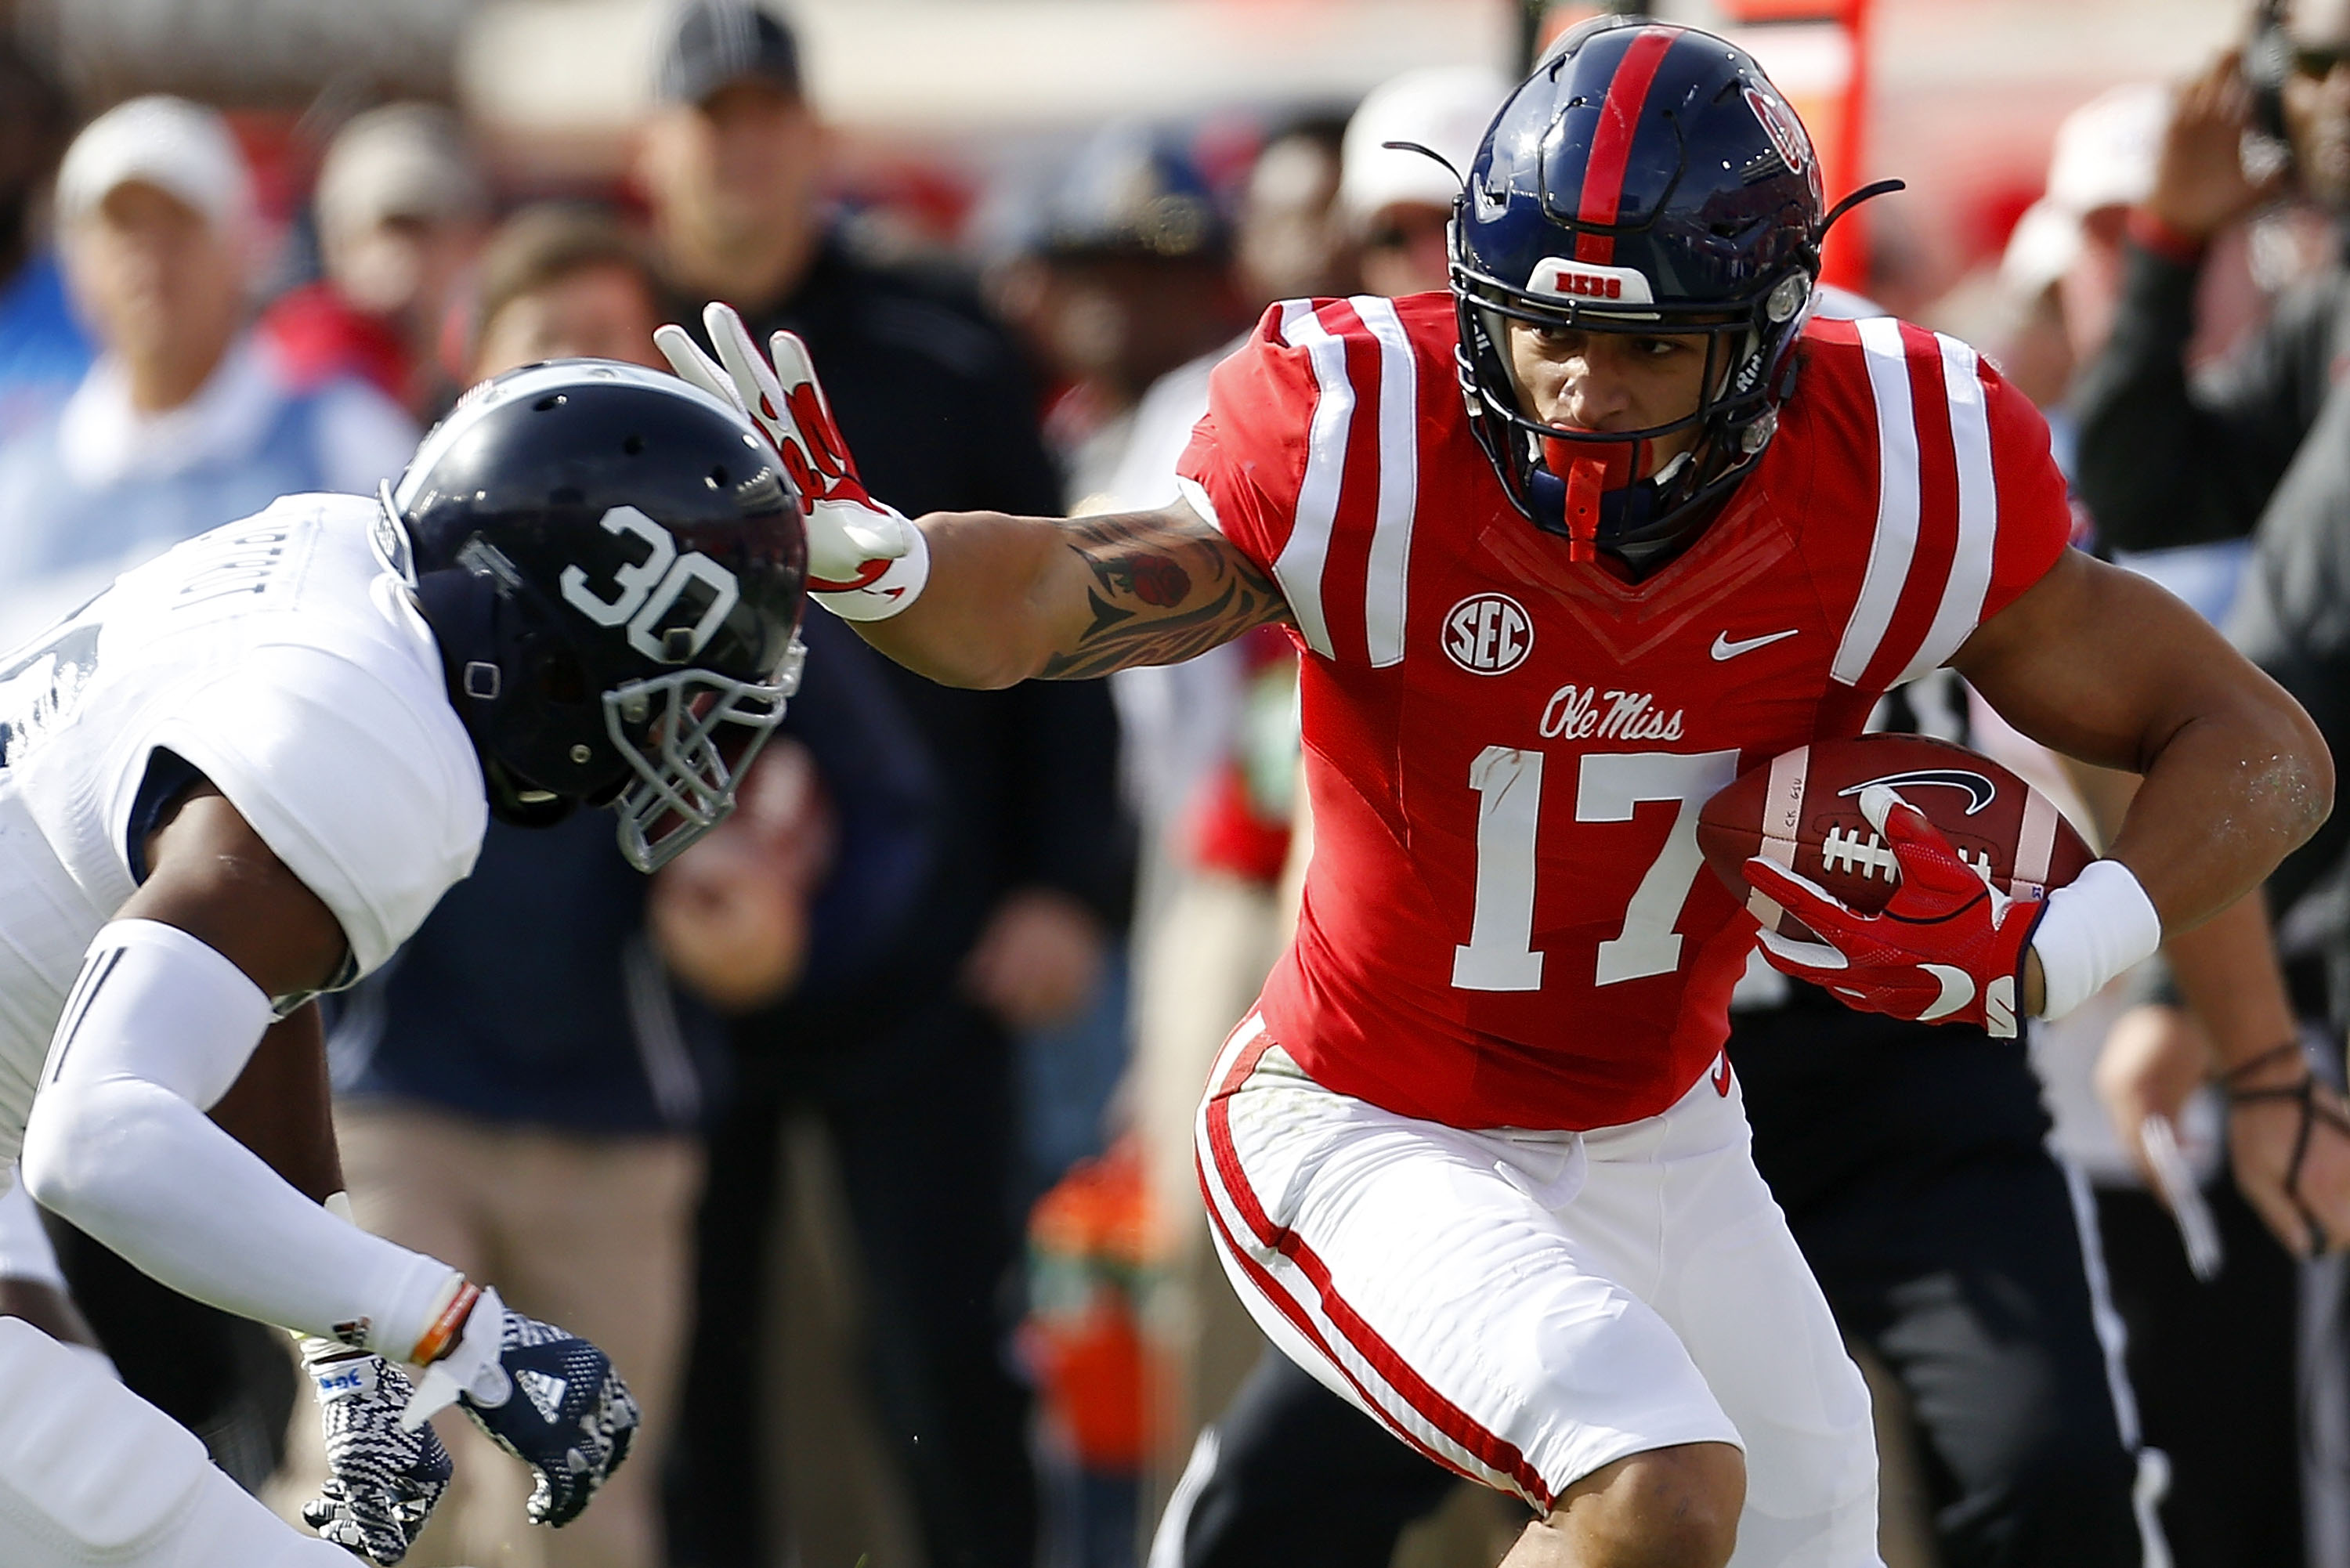 Giants tight end Evan Engram was too versatile to win a TE award in college